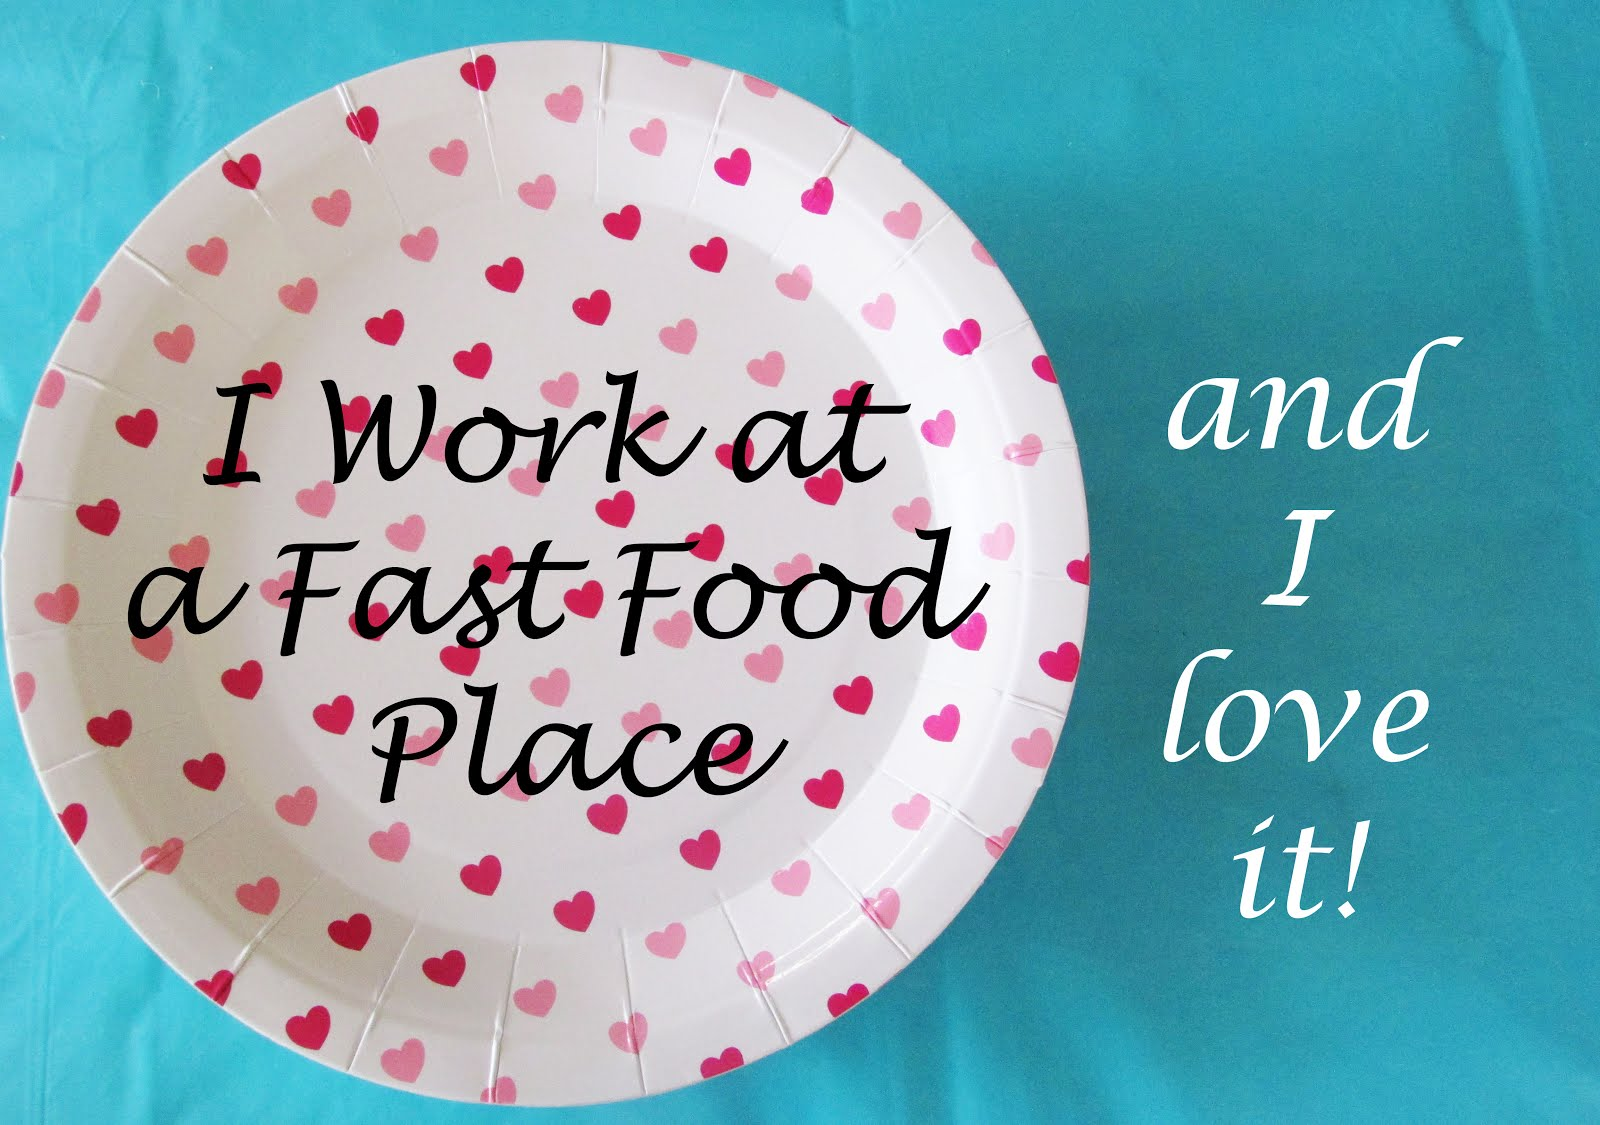 I Work At A Fast Food Place - And I Love It!